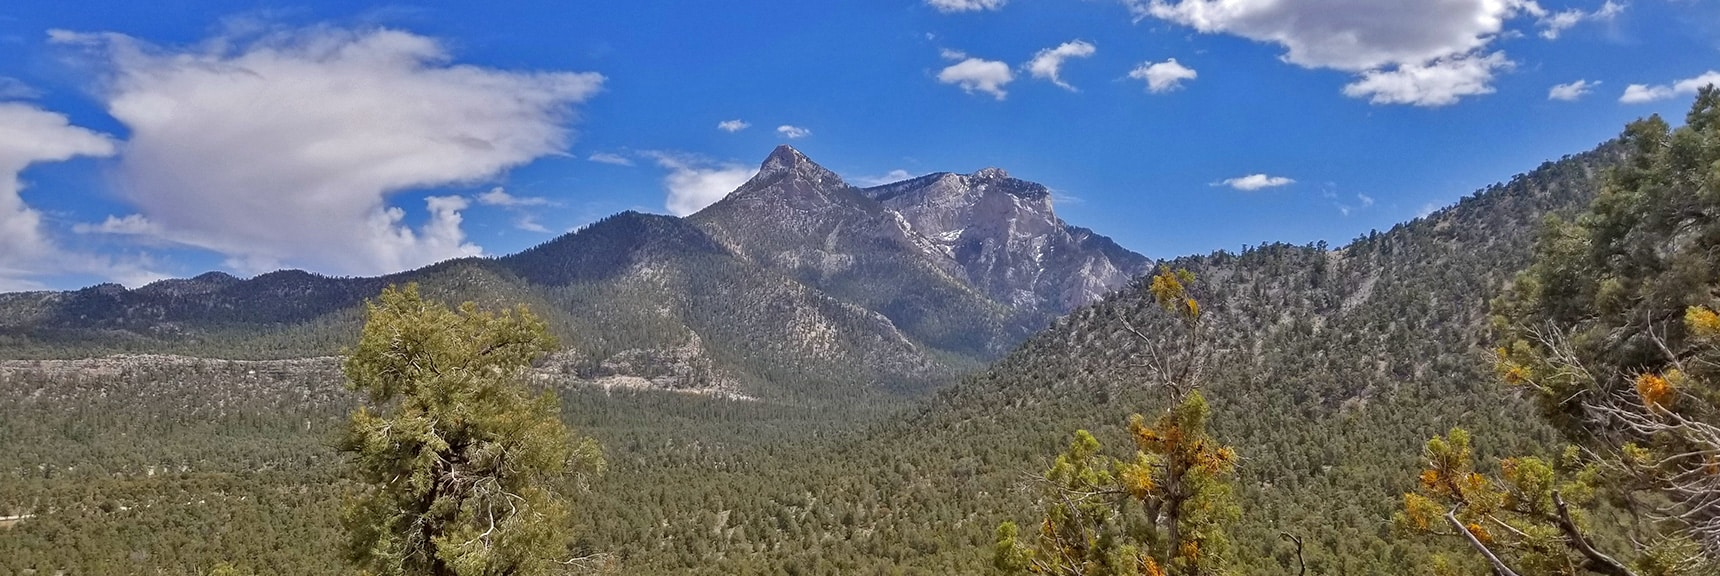 Mummy Mountain's Head Viewed from an Initial Rise on the Mud Springs Loop Trail   Sawmill Trail to McFarland Peak   Spring Mountains, Nevada